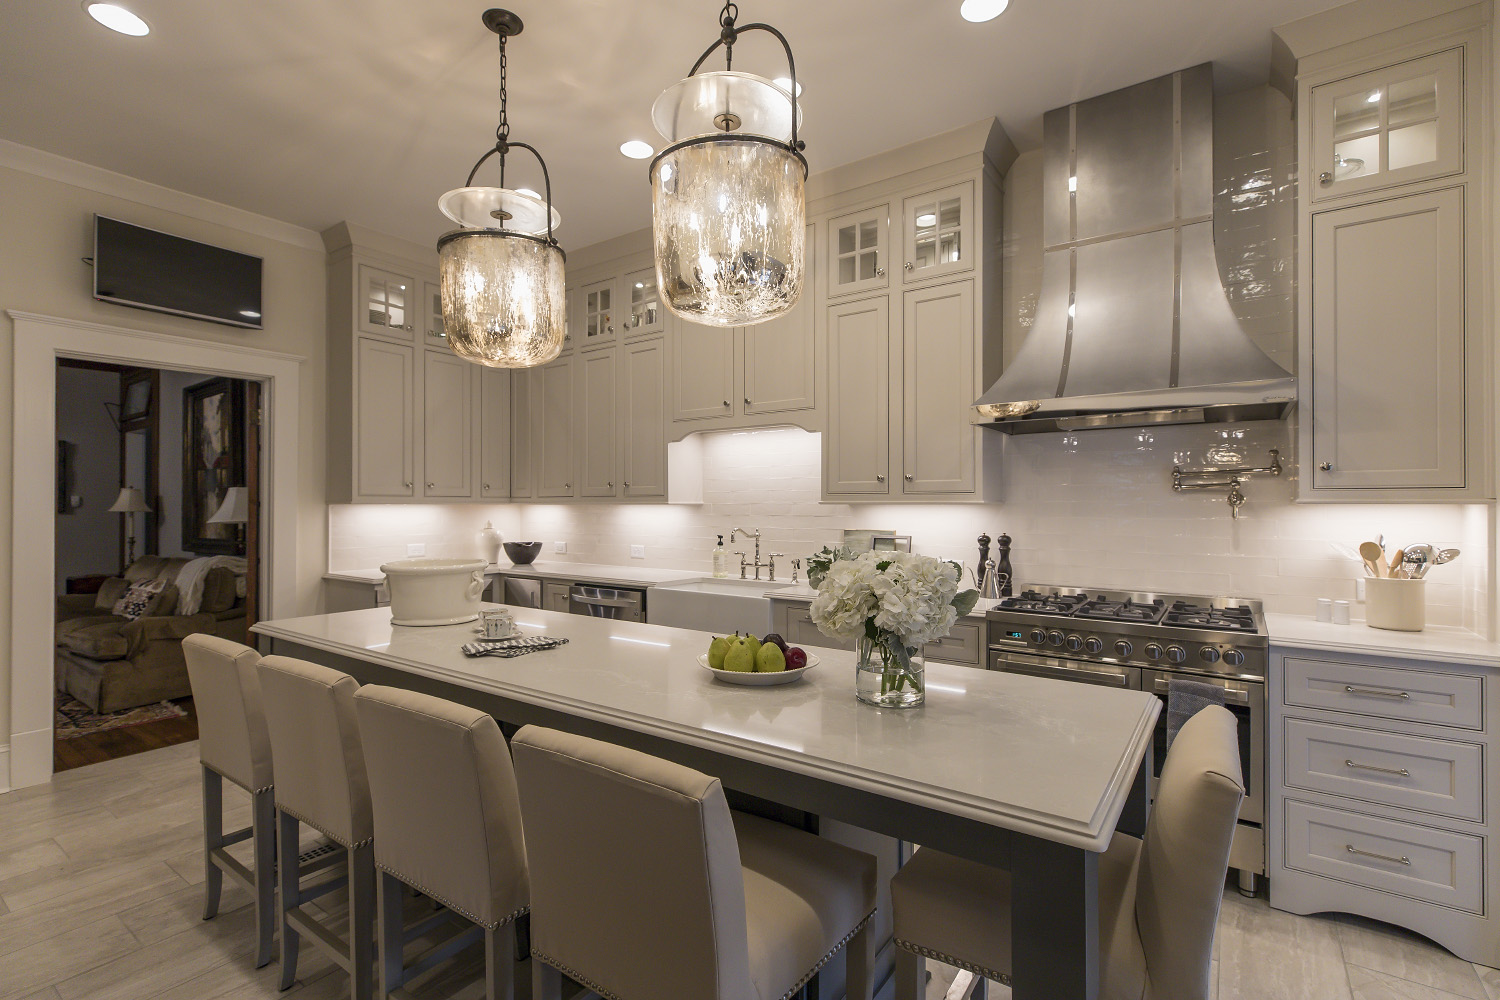 - 9 Tips for Prepping Your Home for a Photoshoot